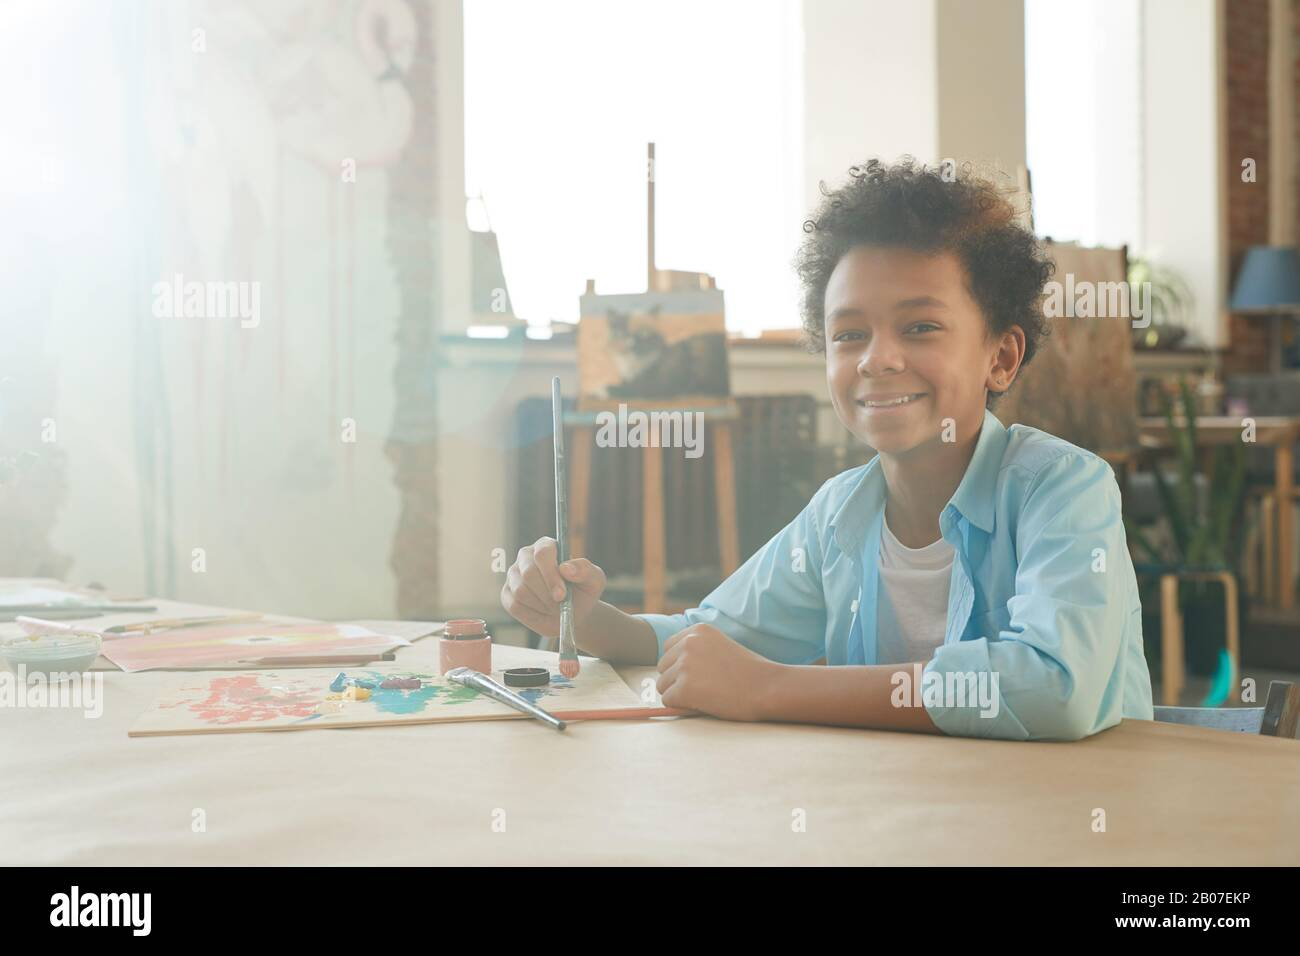 Portrait of African young boy smiling at camera while sitting at the table and drawing a picture with paints and brush Stock Photo